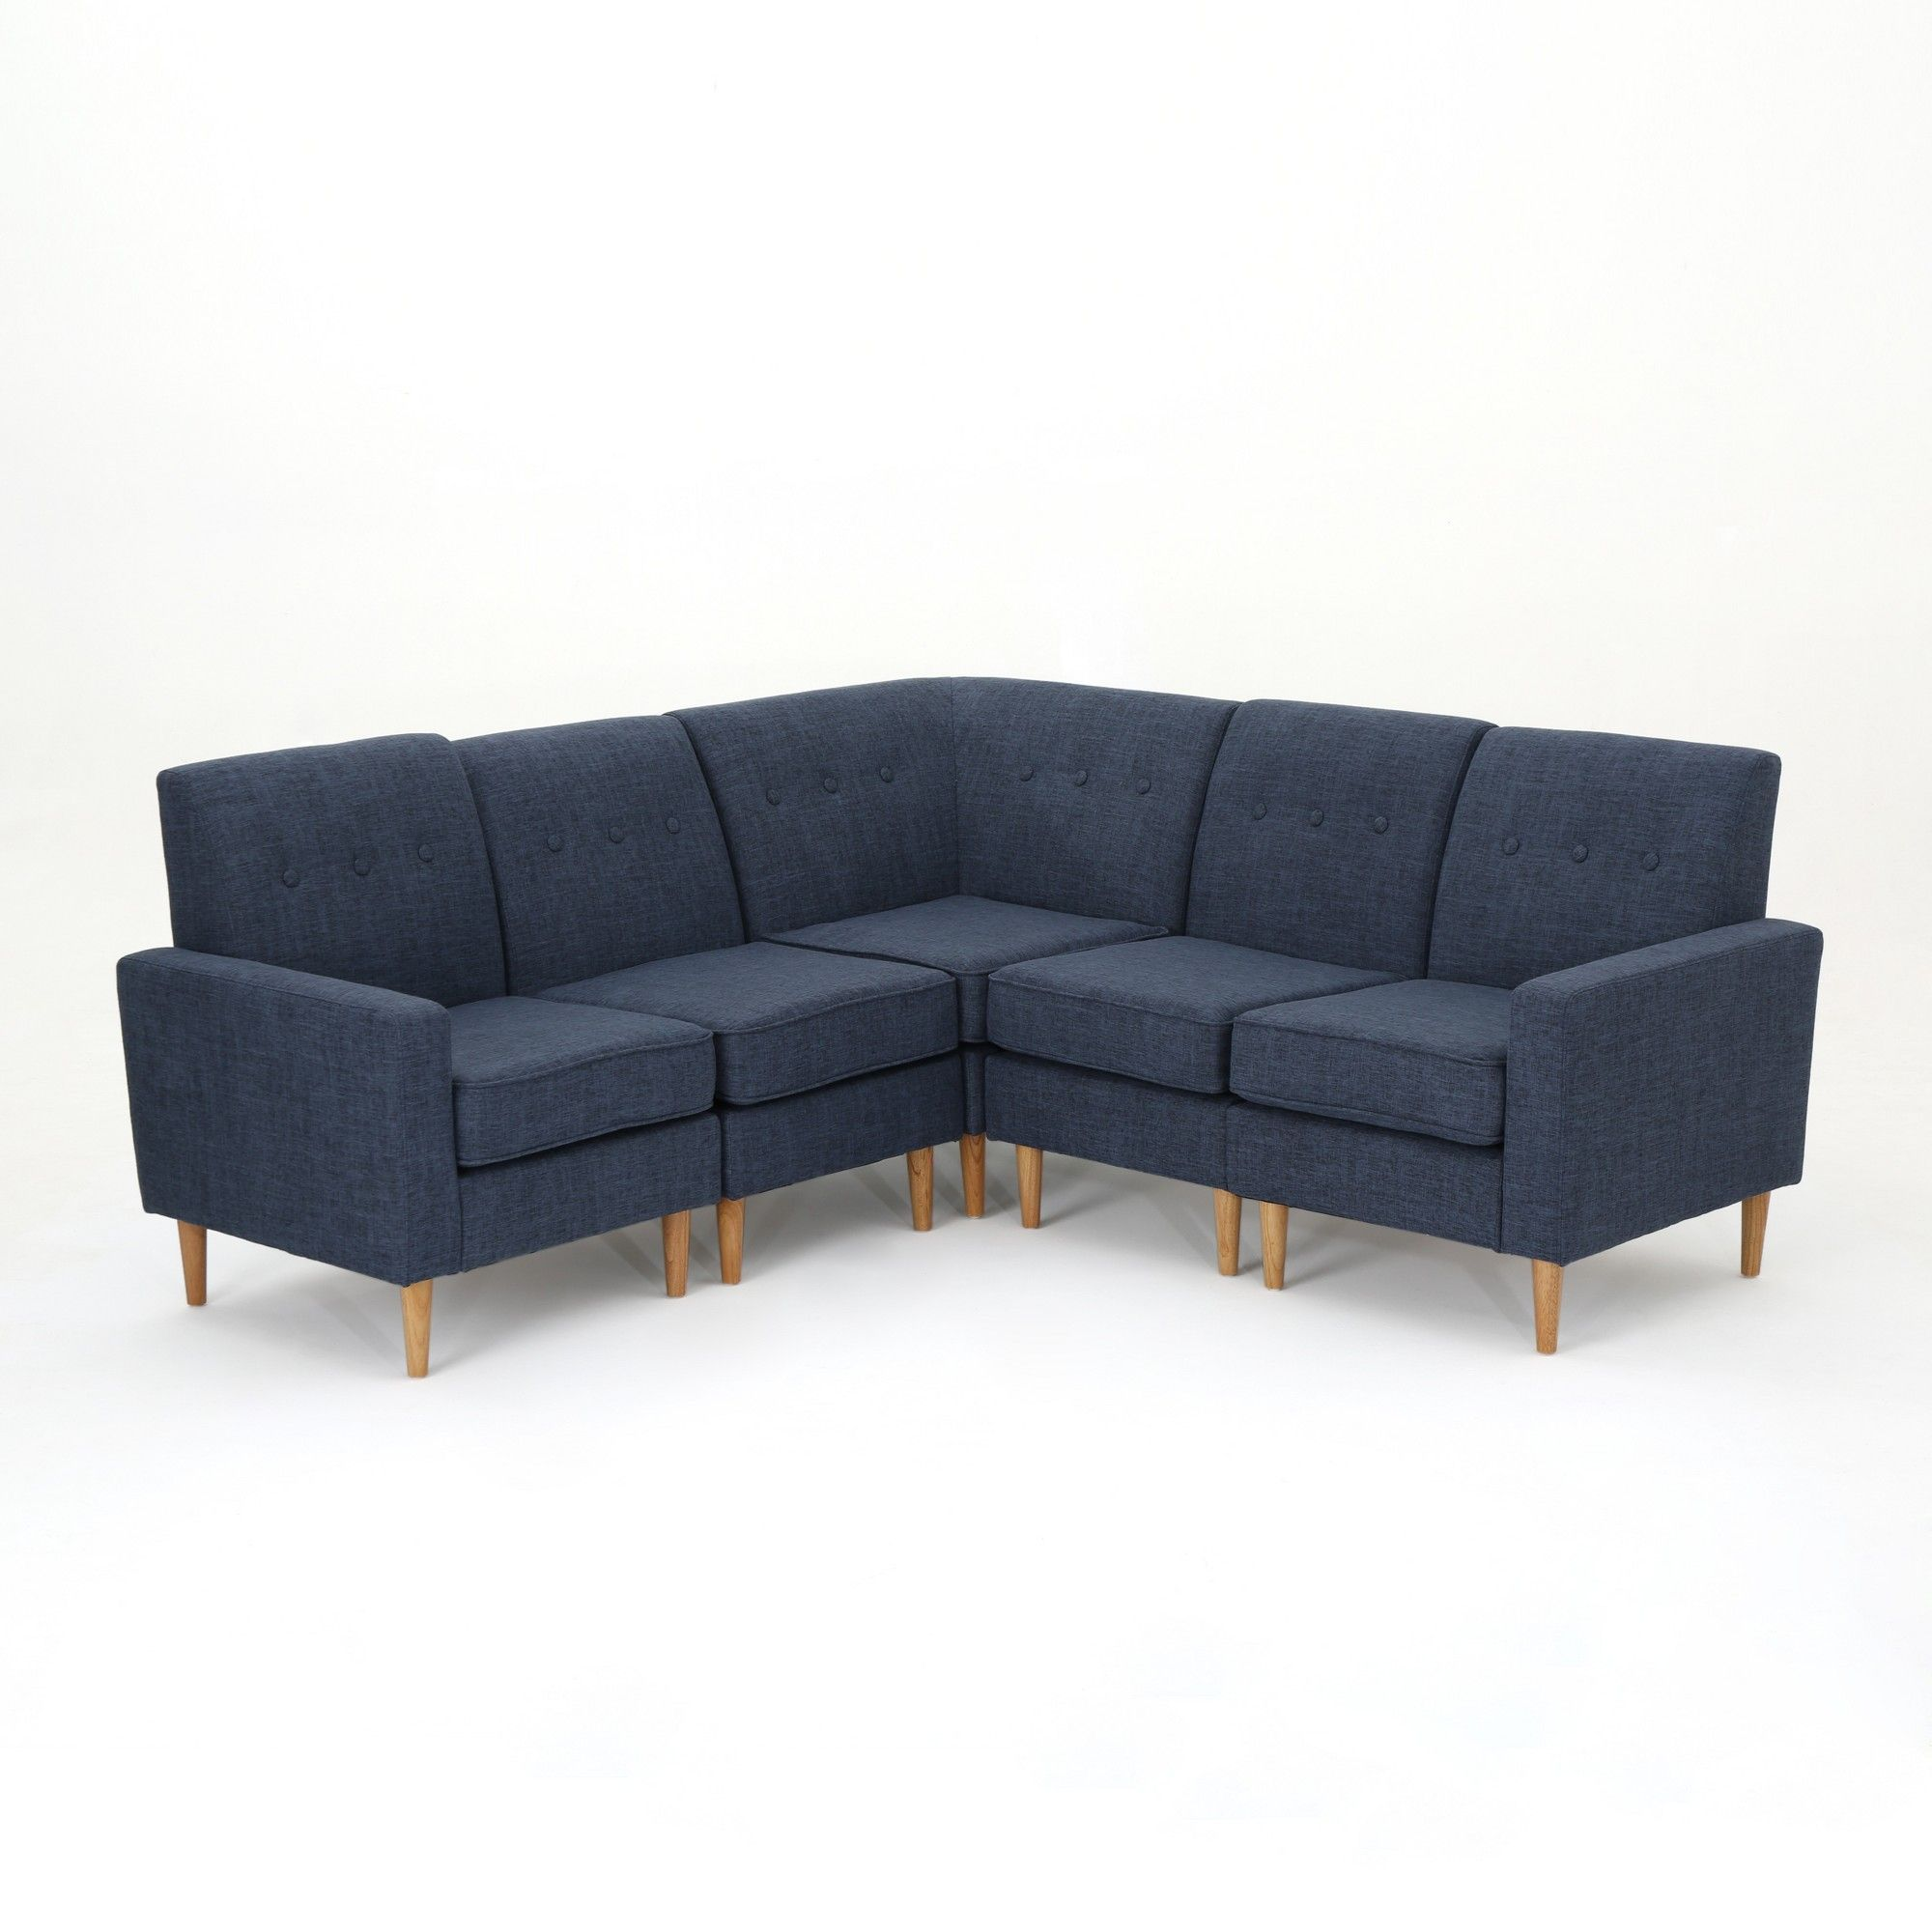 Sofa Set Action 5pc Sawyer Sectional Sofa Set Dark Blue Christopher Knight Home